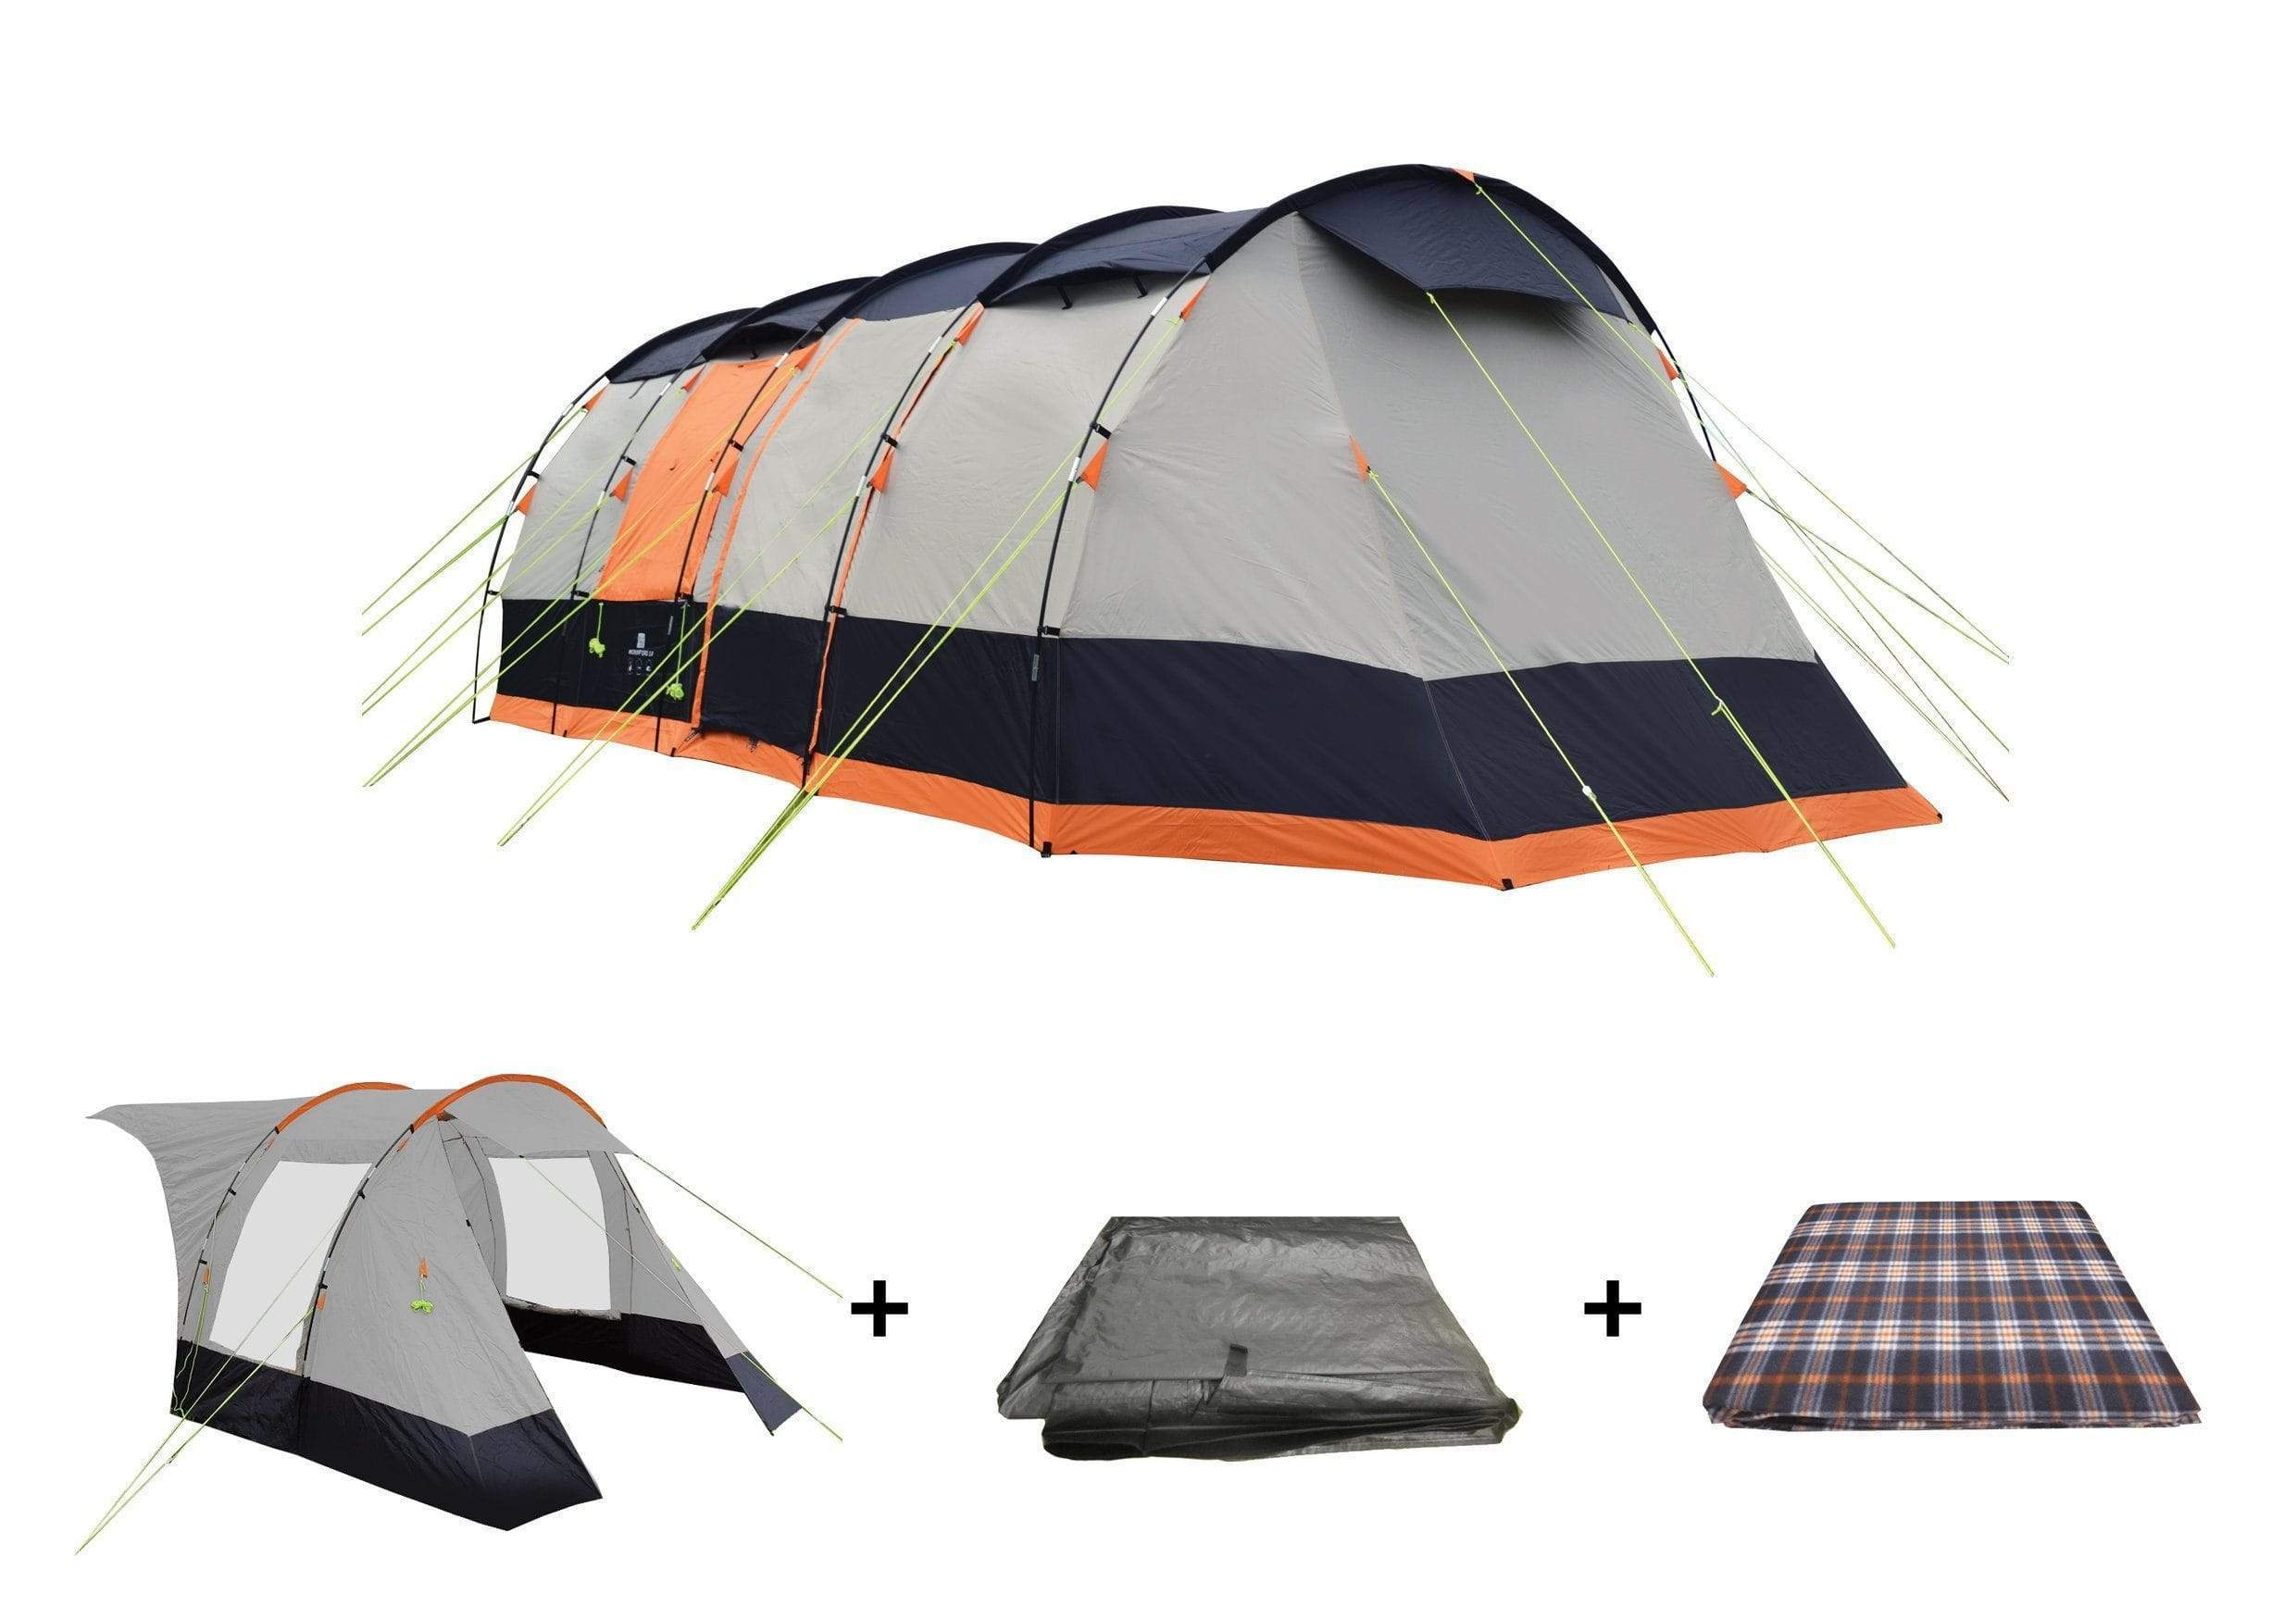 OLPRO Wichenford 3.0  8 Berth Tent Package, Extension, Tent, Footprint Groundsheet, Carpet